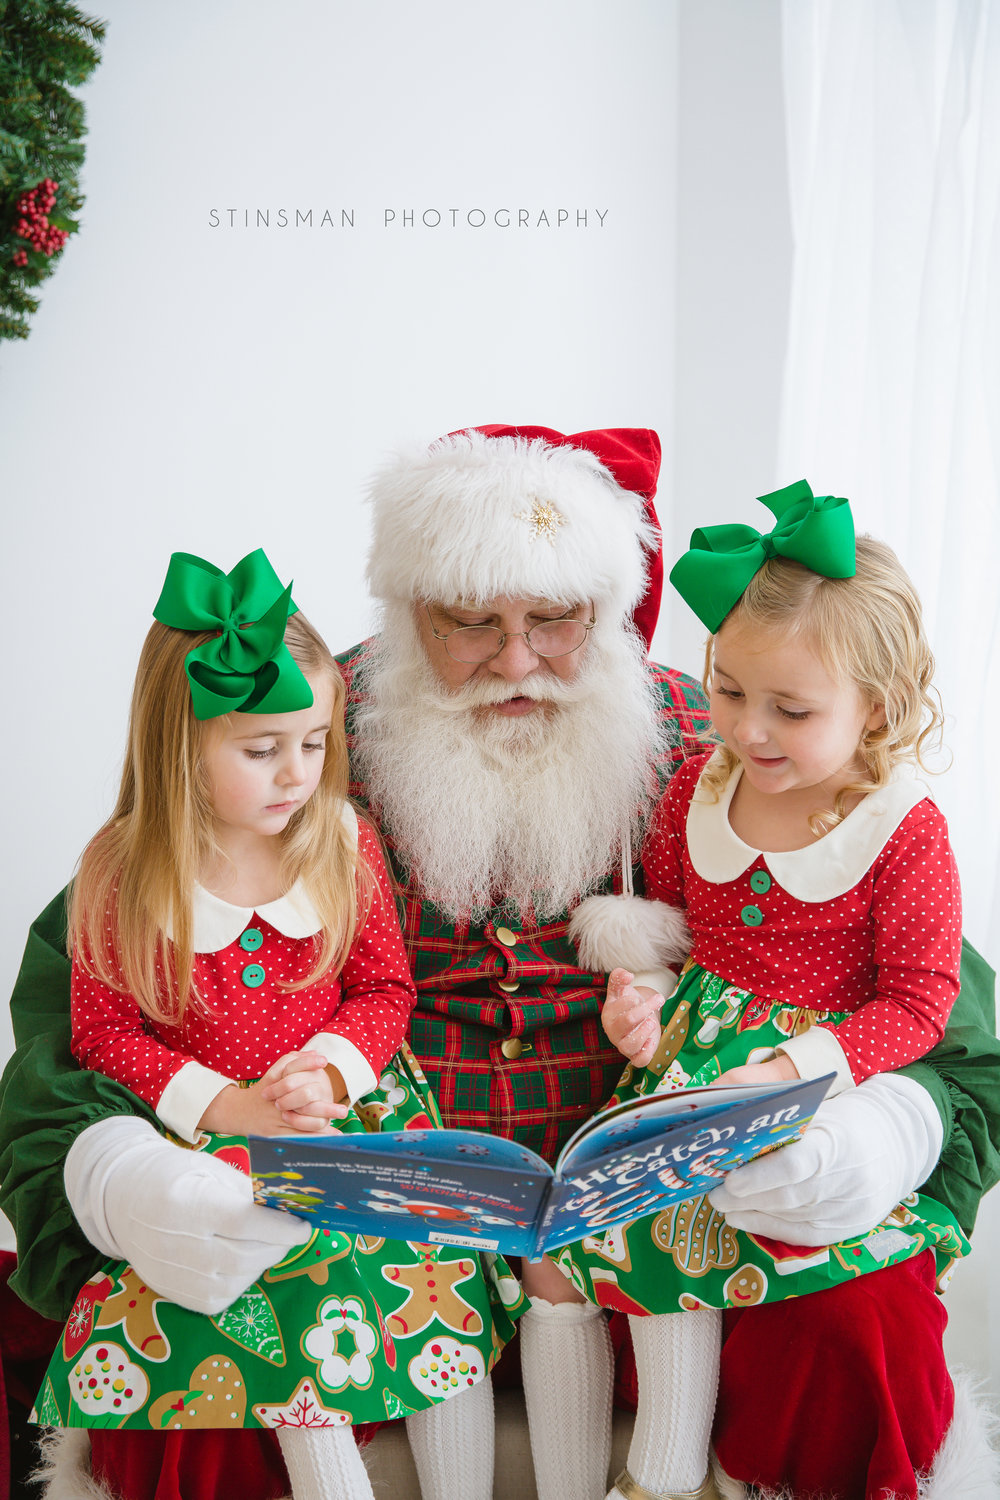 twin girls reading with Santa about how to catch an elf in burlington nj photo studio